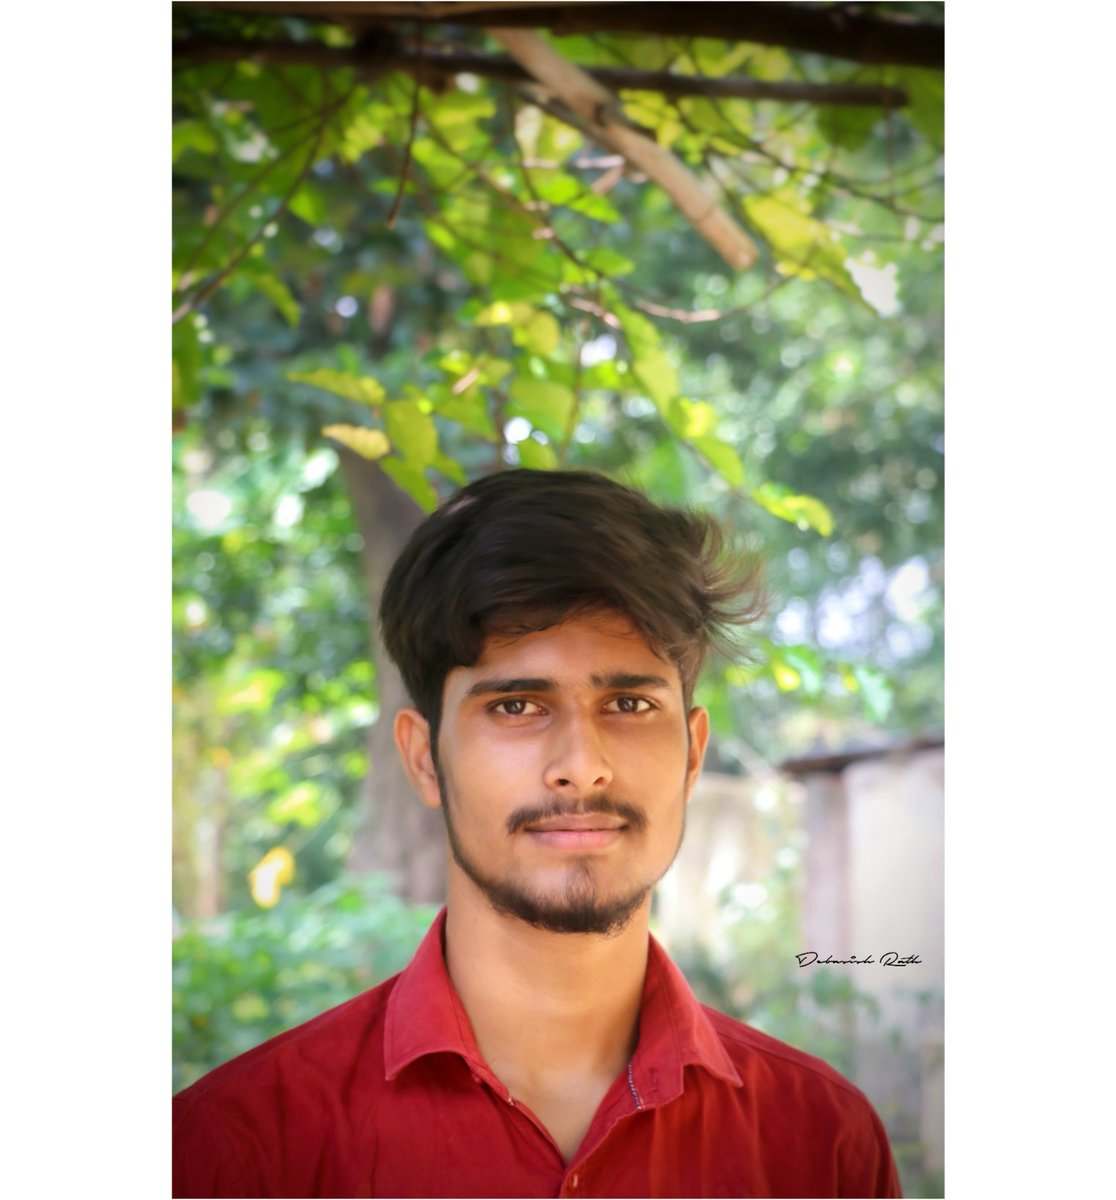 Always happy and special for my all new post ..... 🙂😇🥰  #photograph #photography #studio #natureful #trending #all #fashion #india #dosupport #ForYouJae #Google https://t.co/oVHckZJCA5